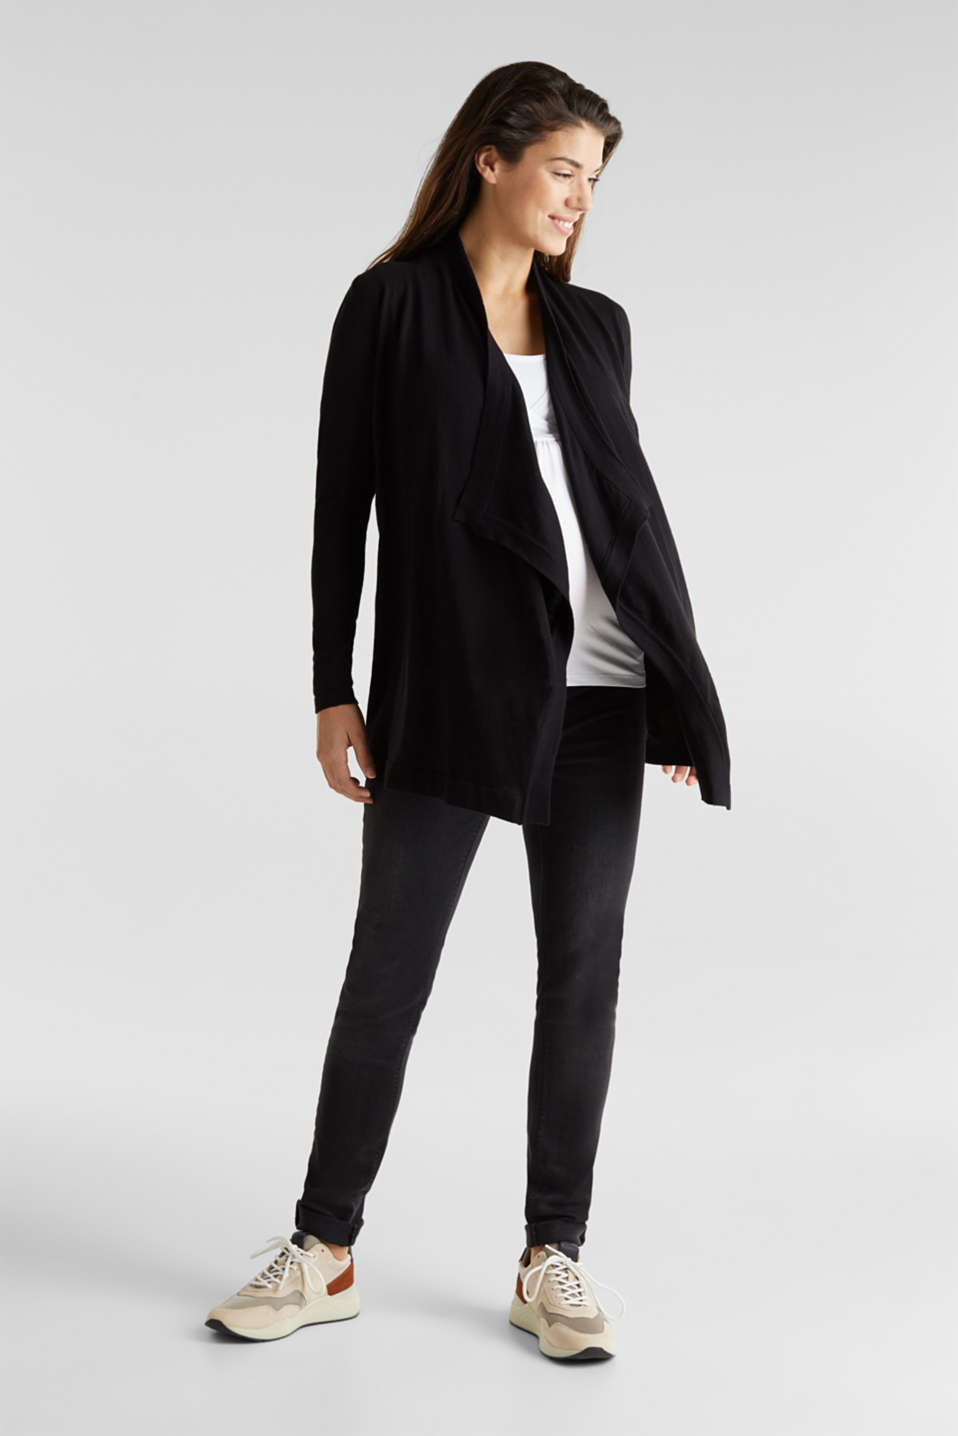 Cardigan with a tie-around belt, 100% cotton, LCBLACK, detail image number 1